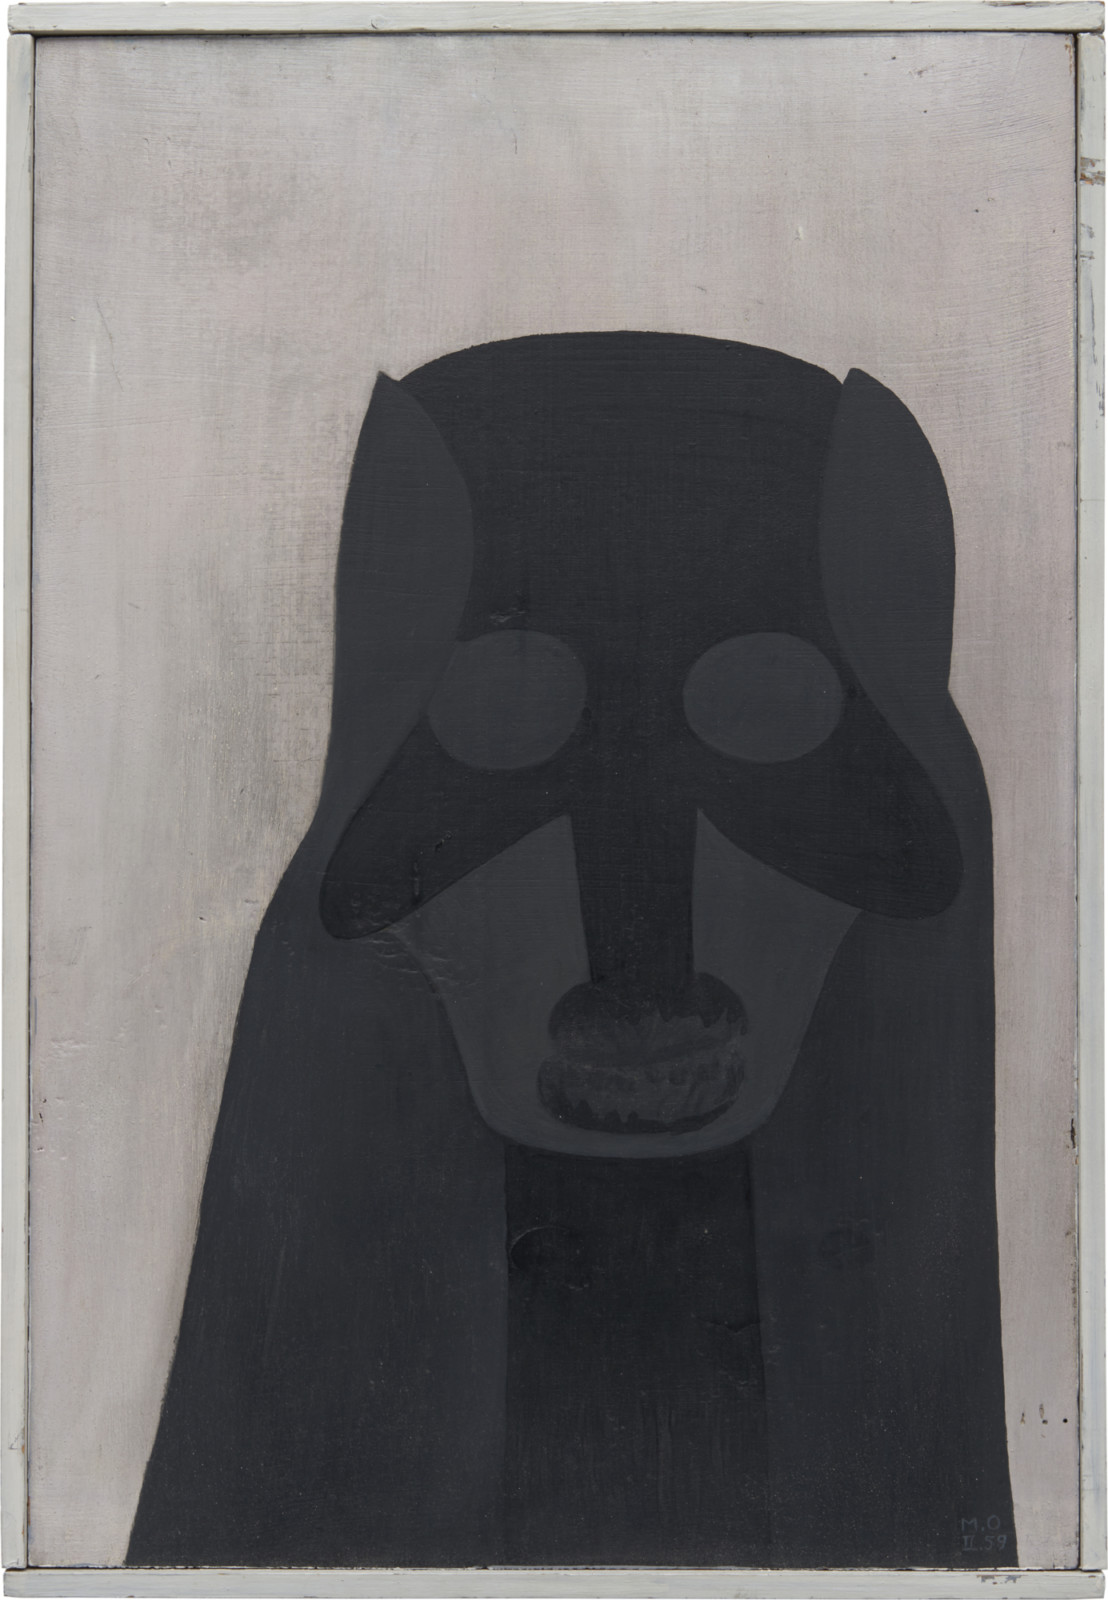 Painting, dated 1959